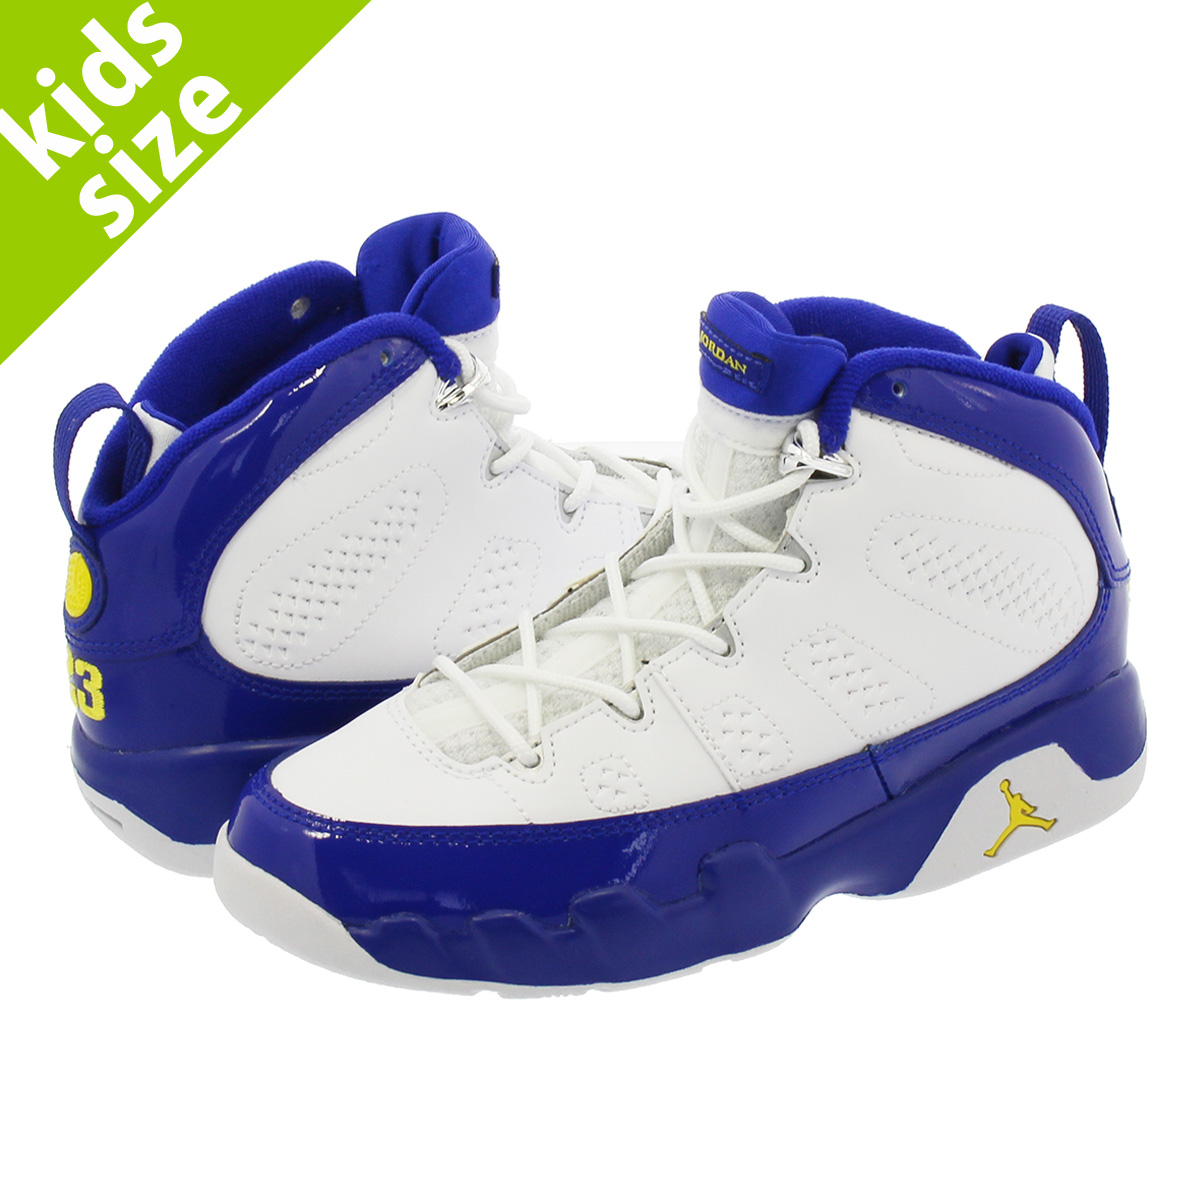 452d8d242ce LOWTEX BIG-SMALL SHOP: NIKE AIR JORDAN 9 RETRO PS Nike Air Jordan 9  nostalgic PS WHITE/CONCORD/TOUR YELLOW 401,811-121 | Rakuten Global Market